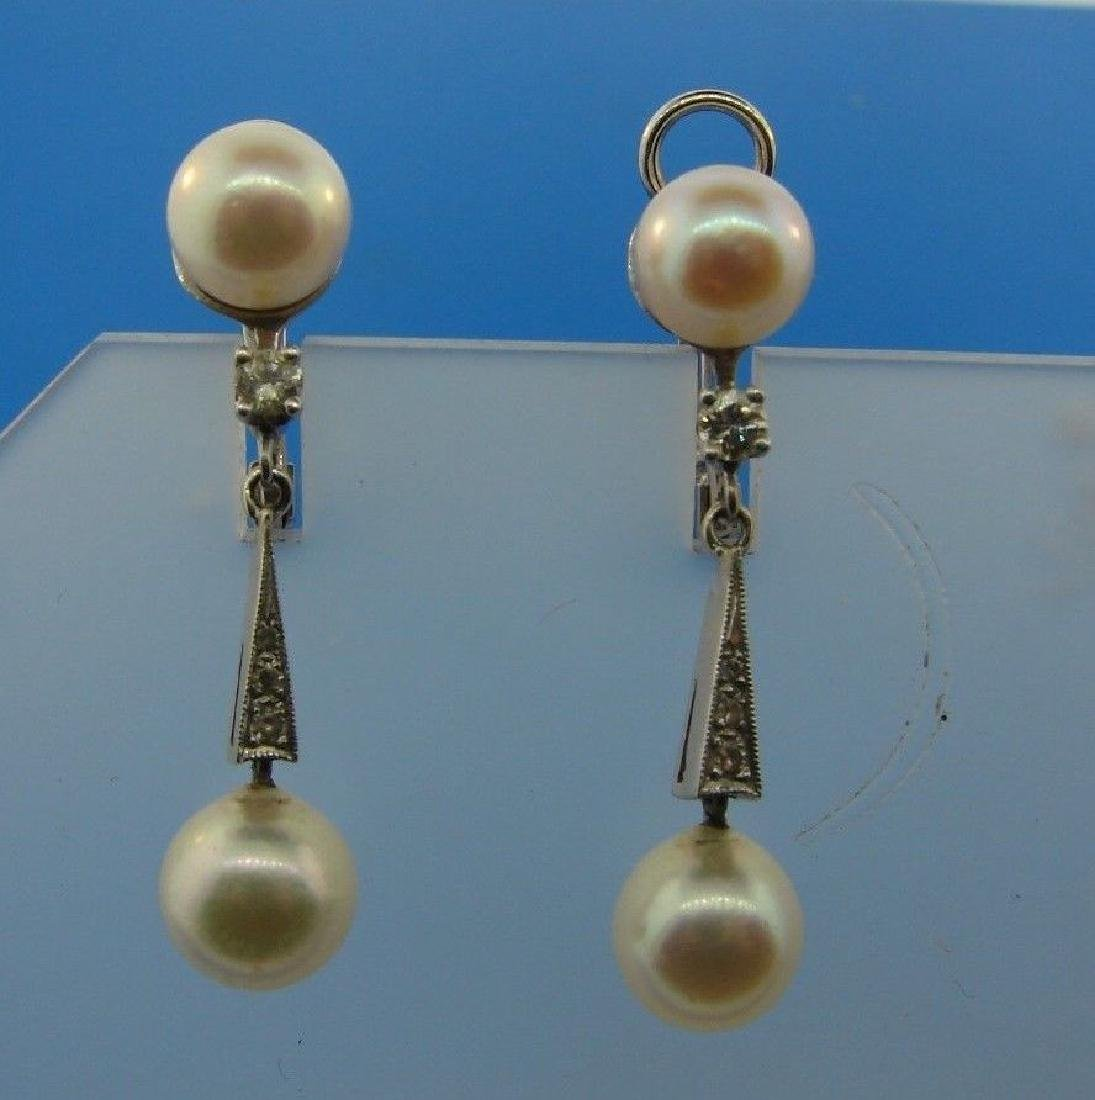 CHIC 14k White Gold, Cultured Pearl & Diamond Earrings